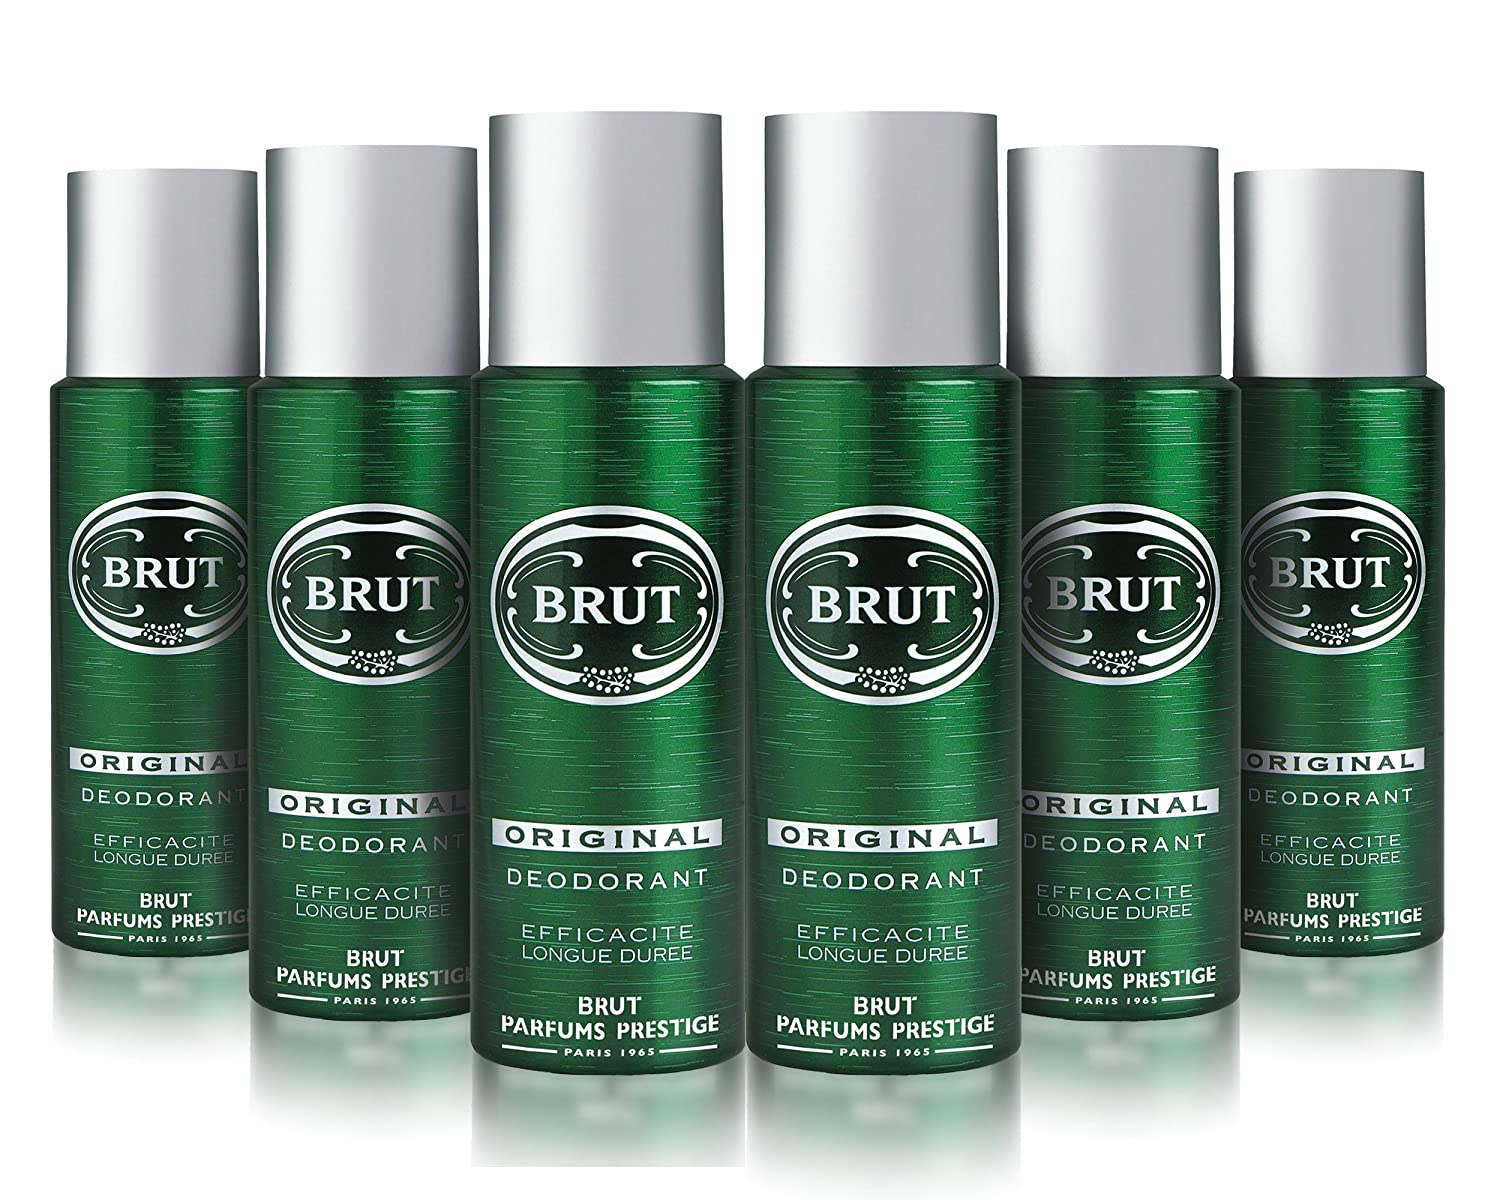 Brut Original Body Spray Deodorant Bundle 6 X 200ml Amazoncouk